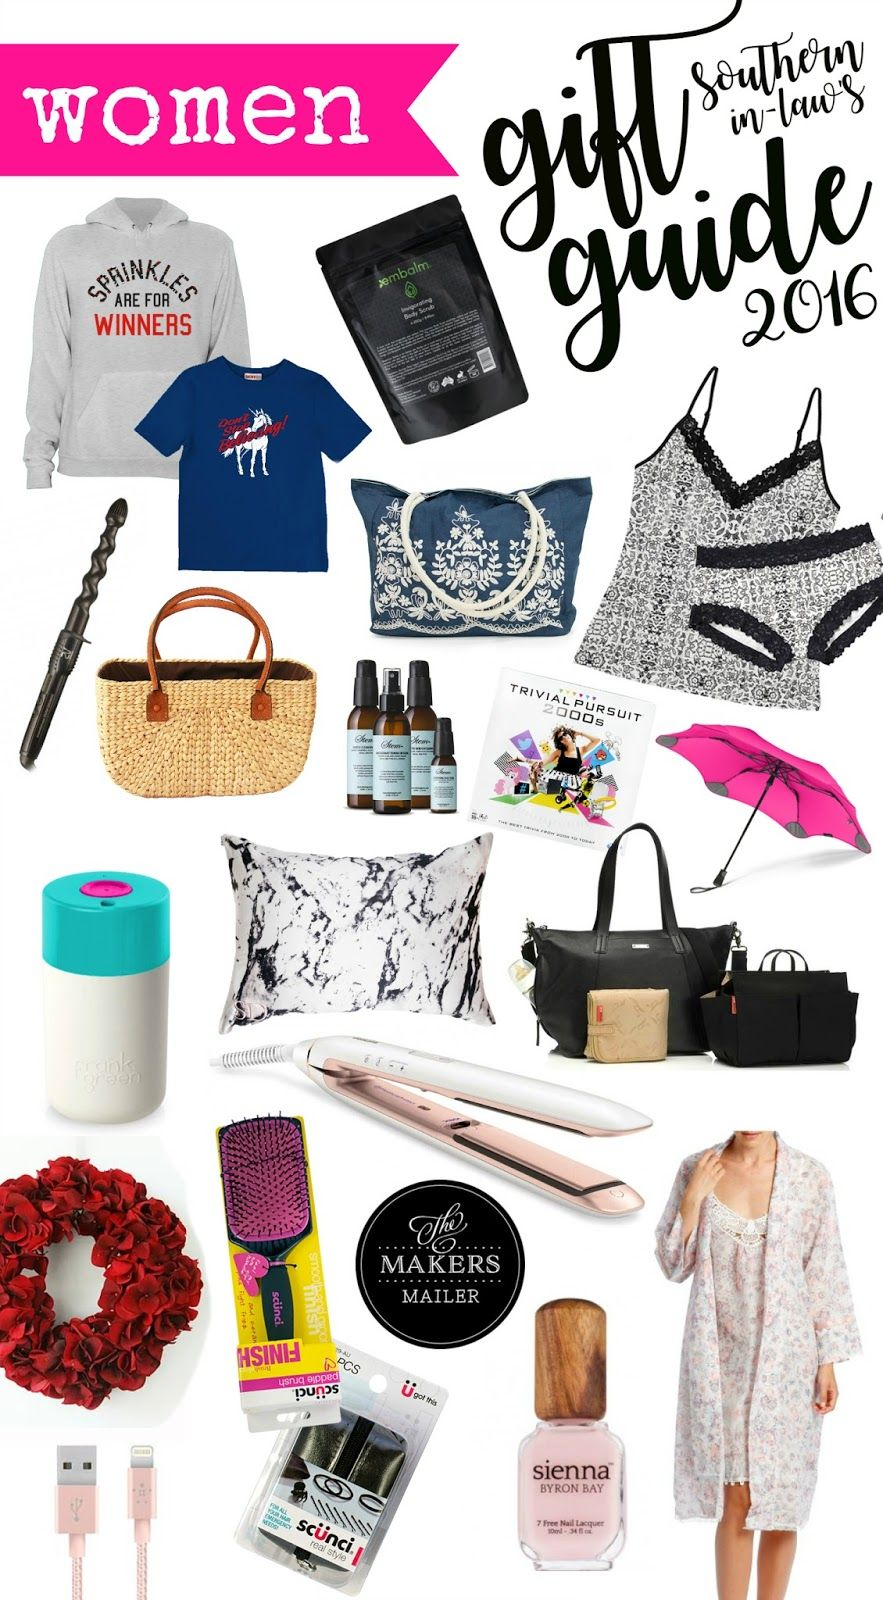 2016 Women's Christmas Gift Guide Christmas gifts for